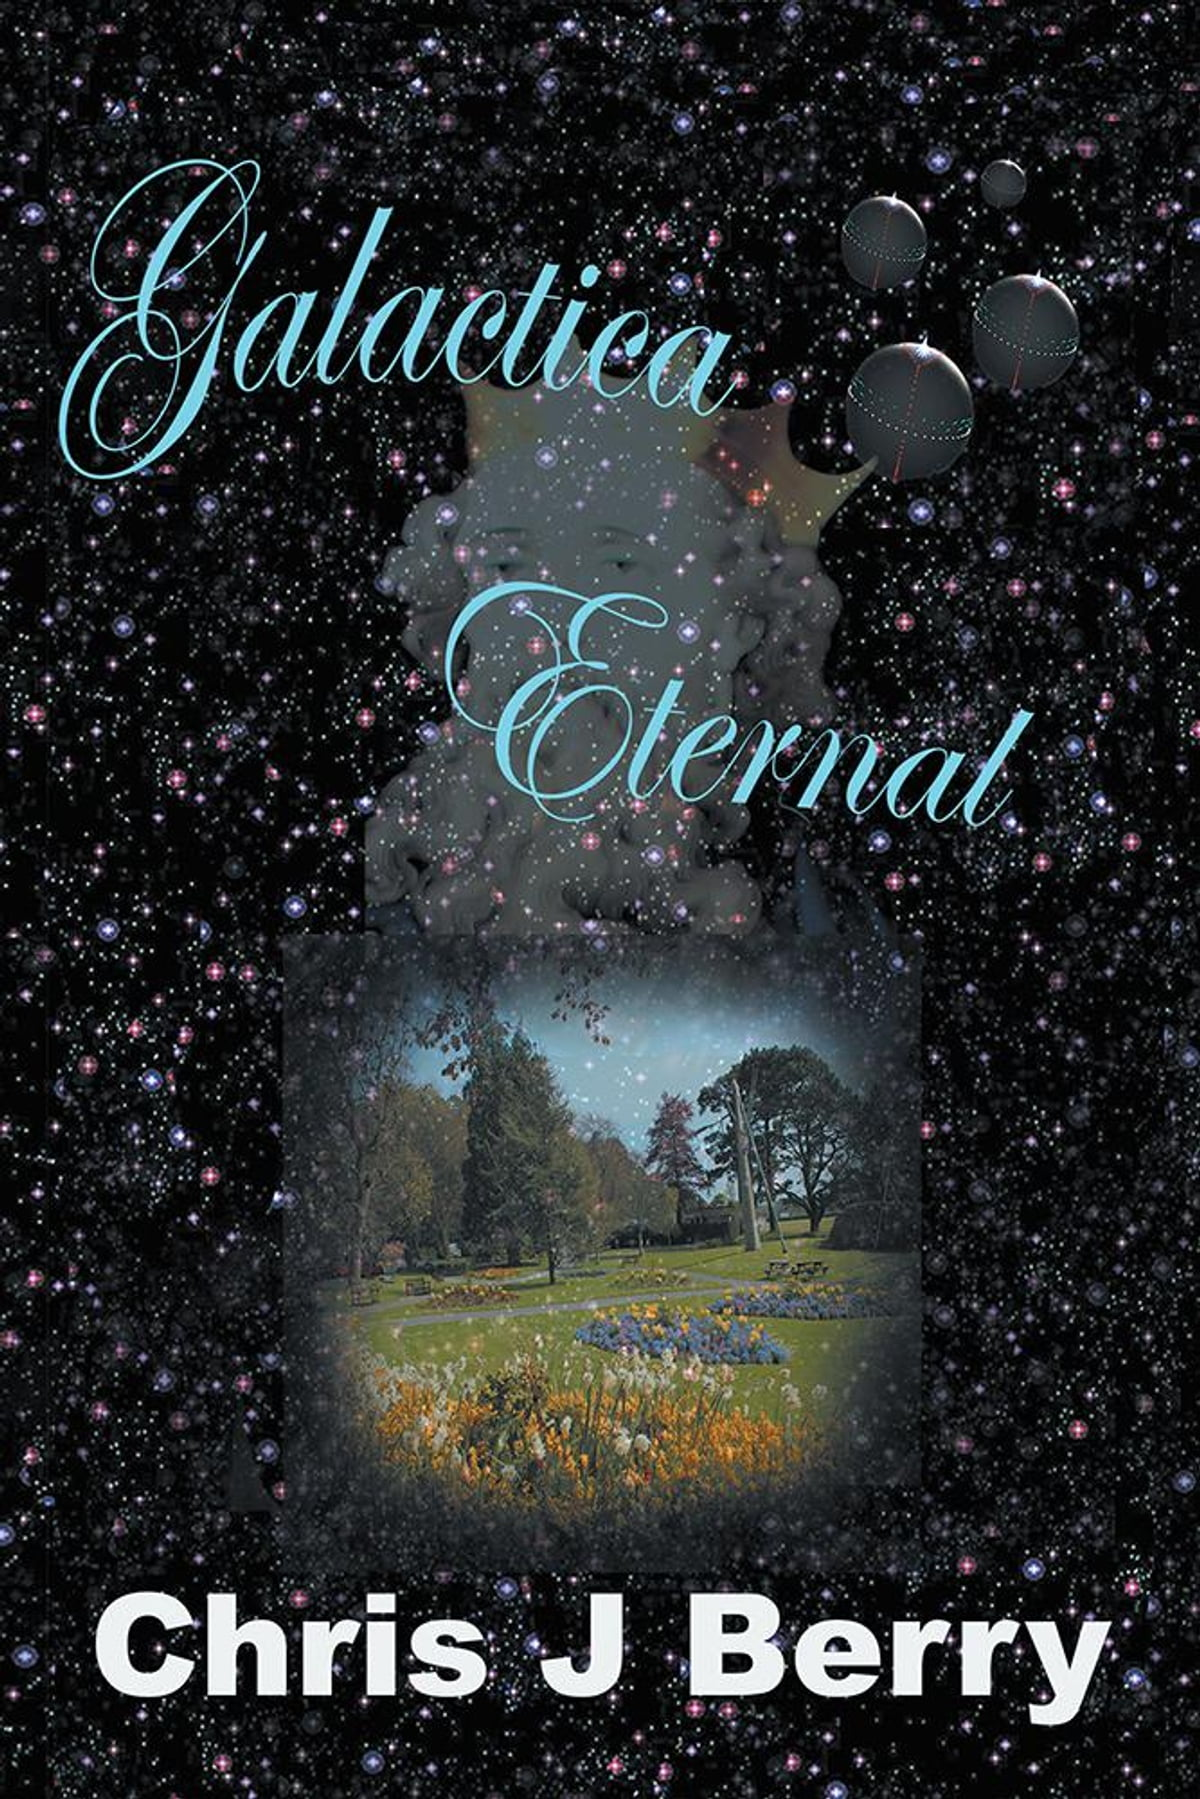 Book one of the series Voyage to Infinity